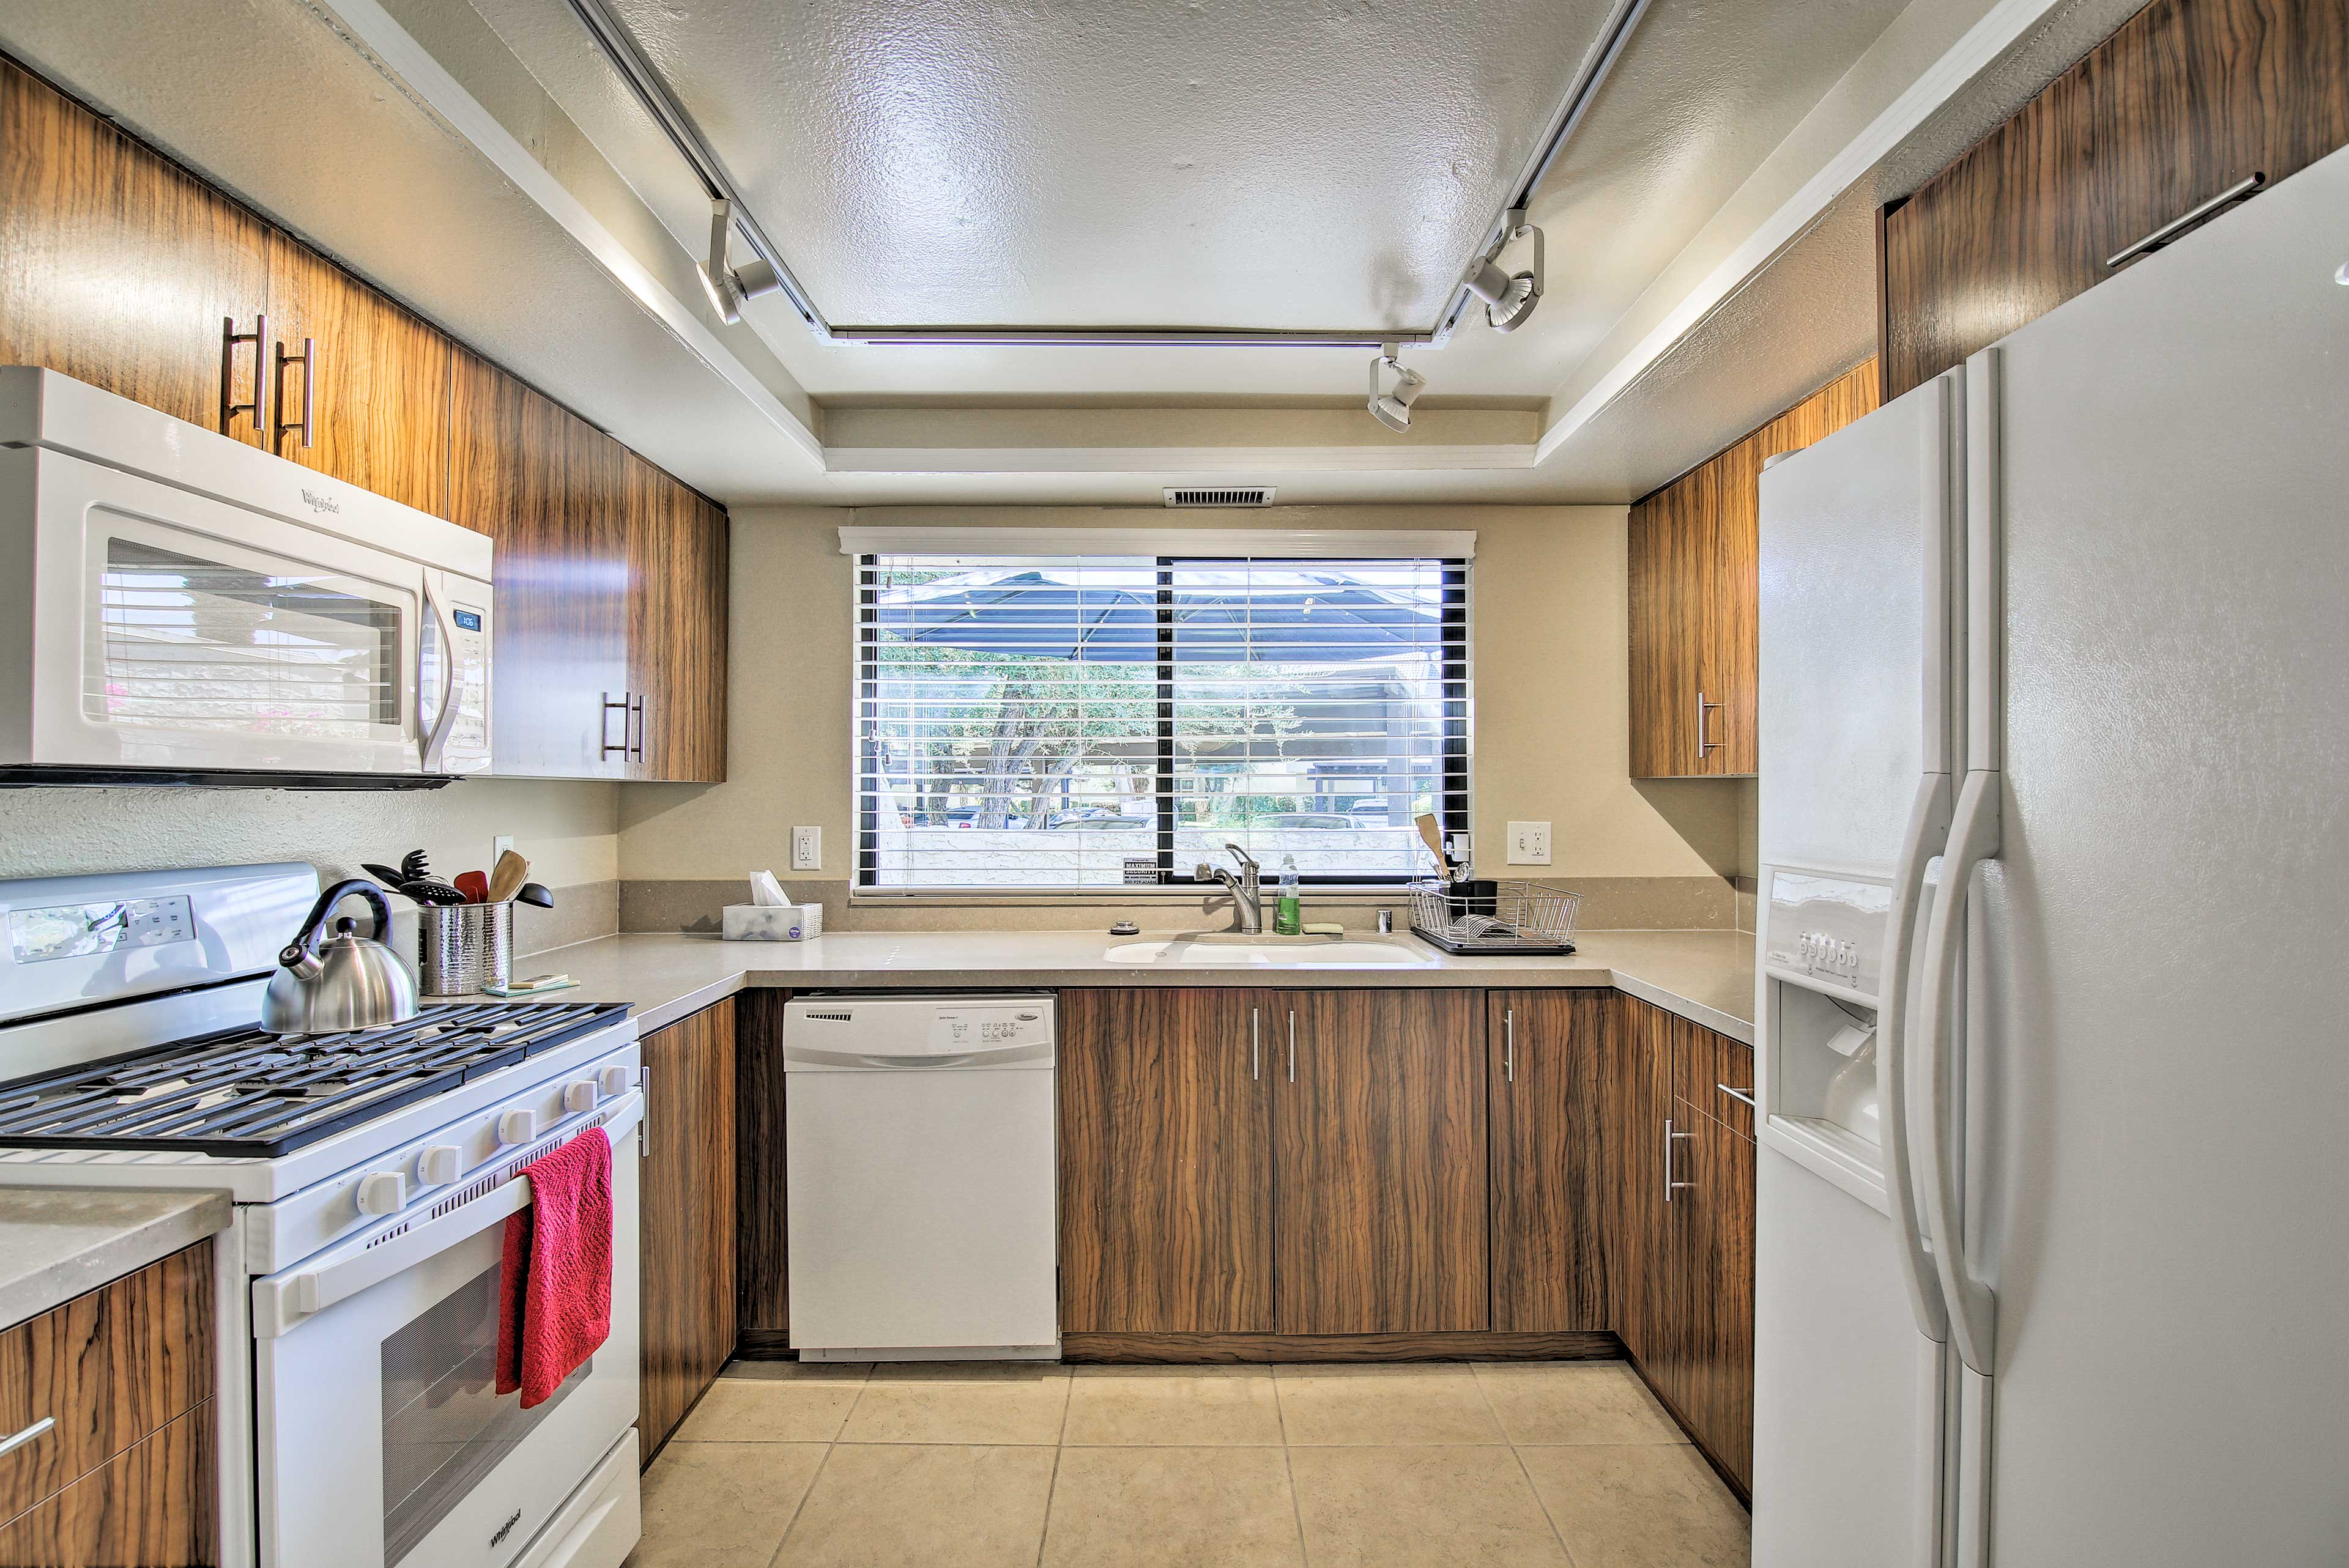 The kitchen features all of the necessary appliances.